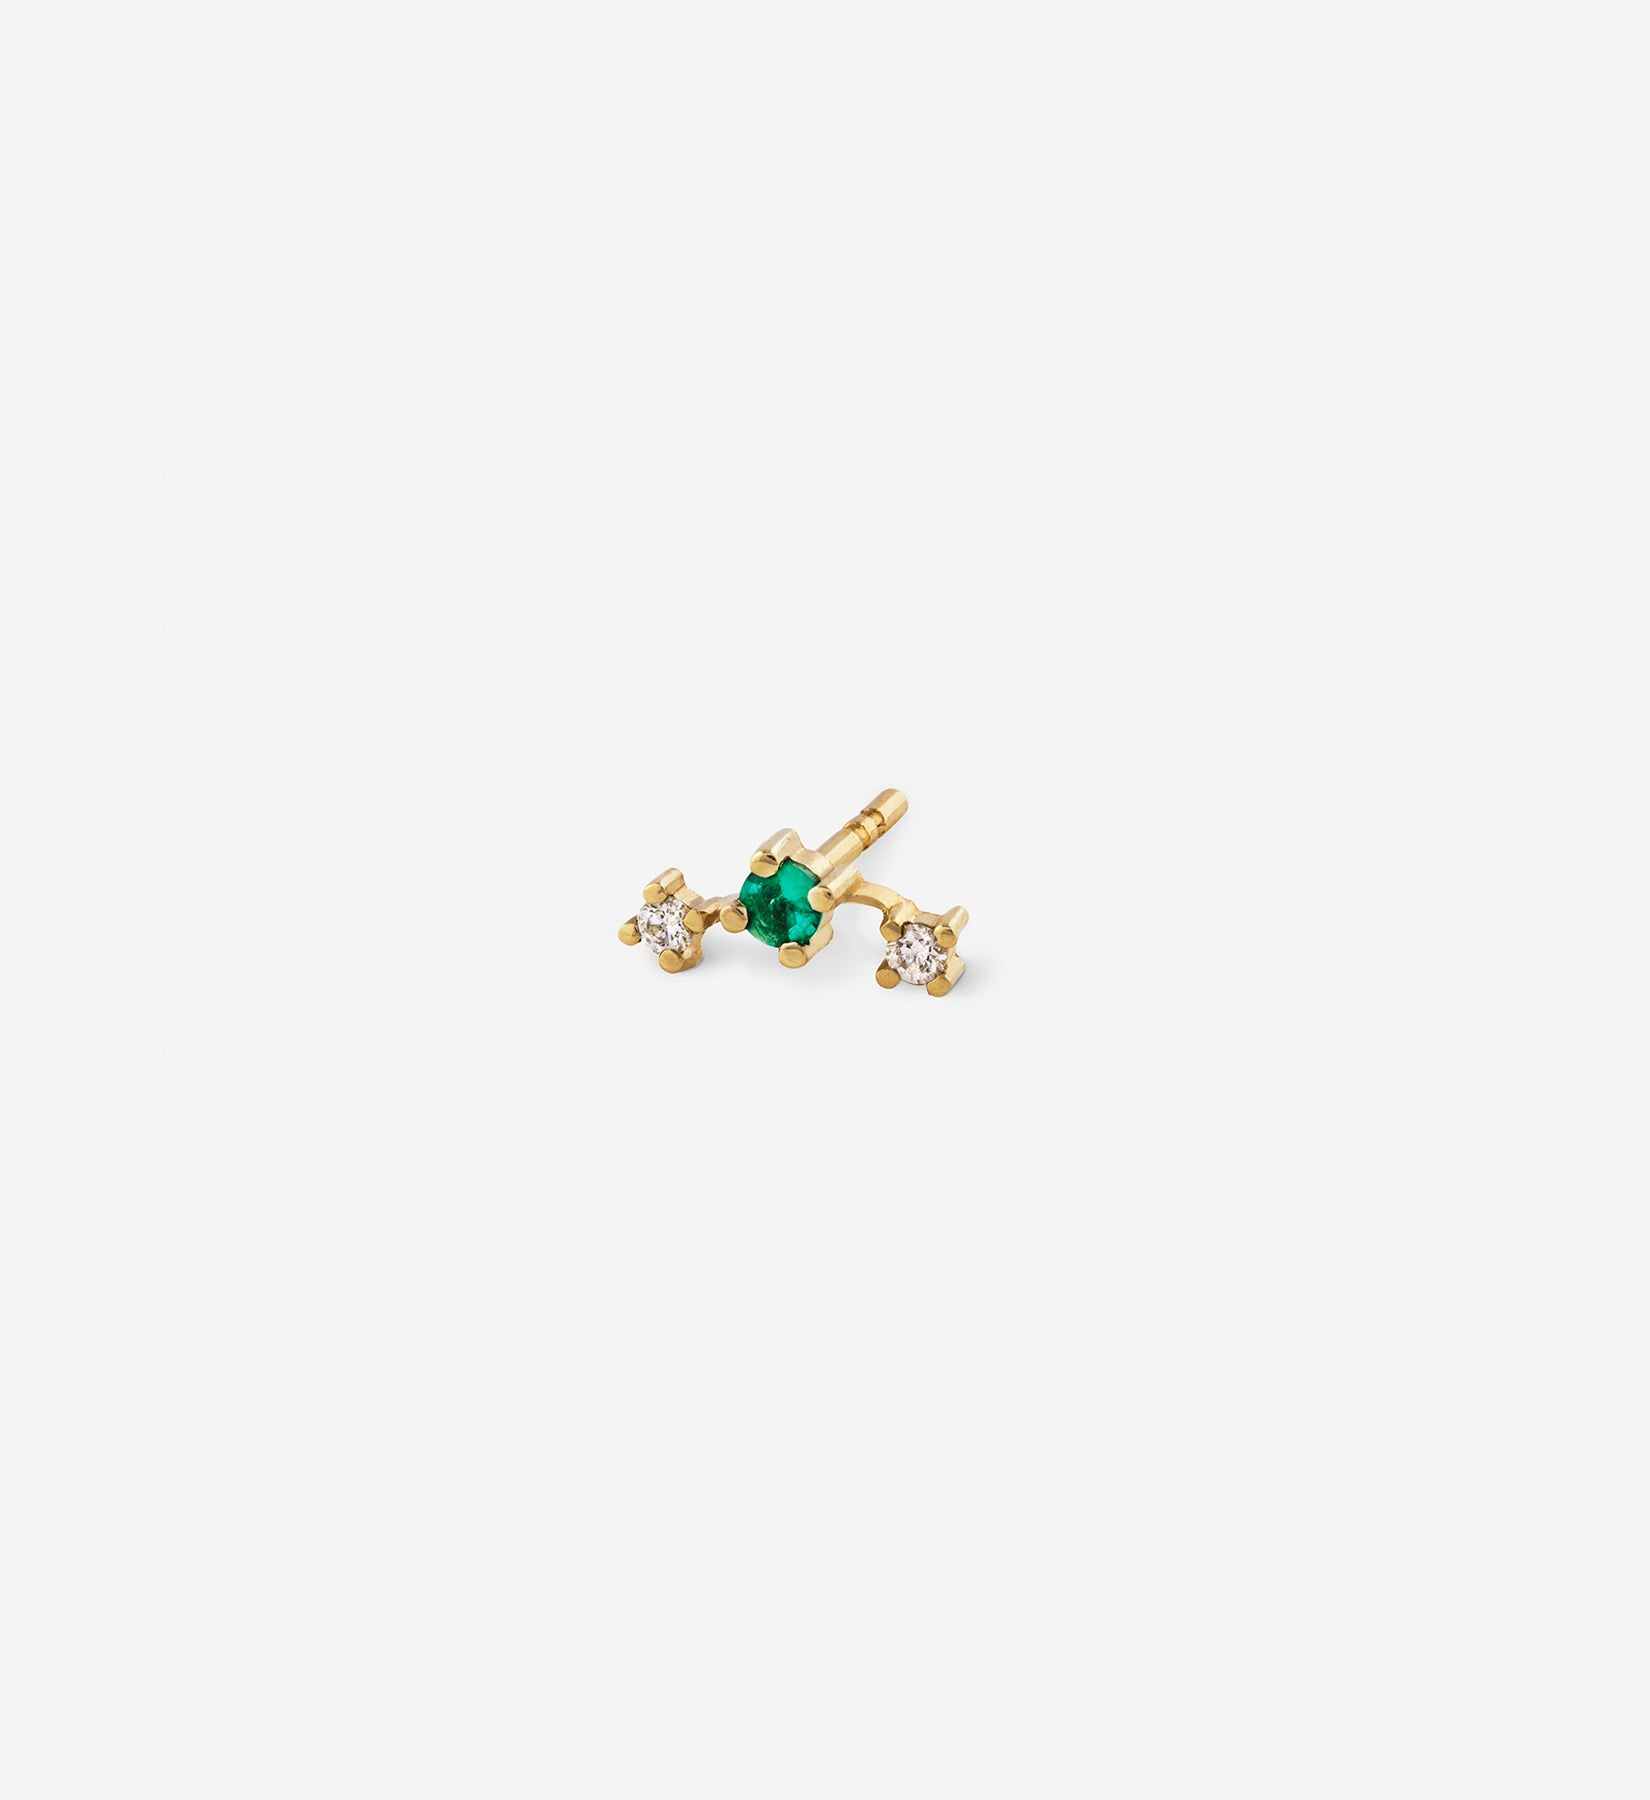 Double Diamond Emerald Stud 0.09 in 14K Gold - Single